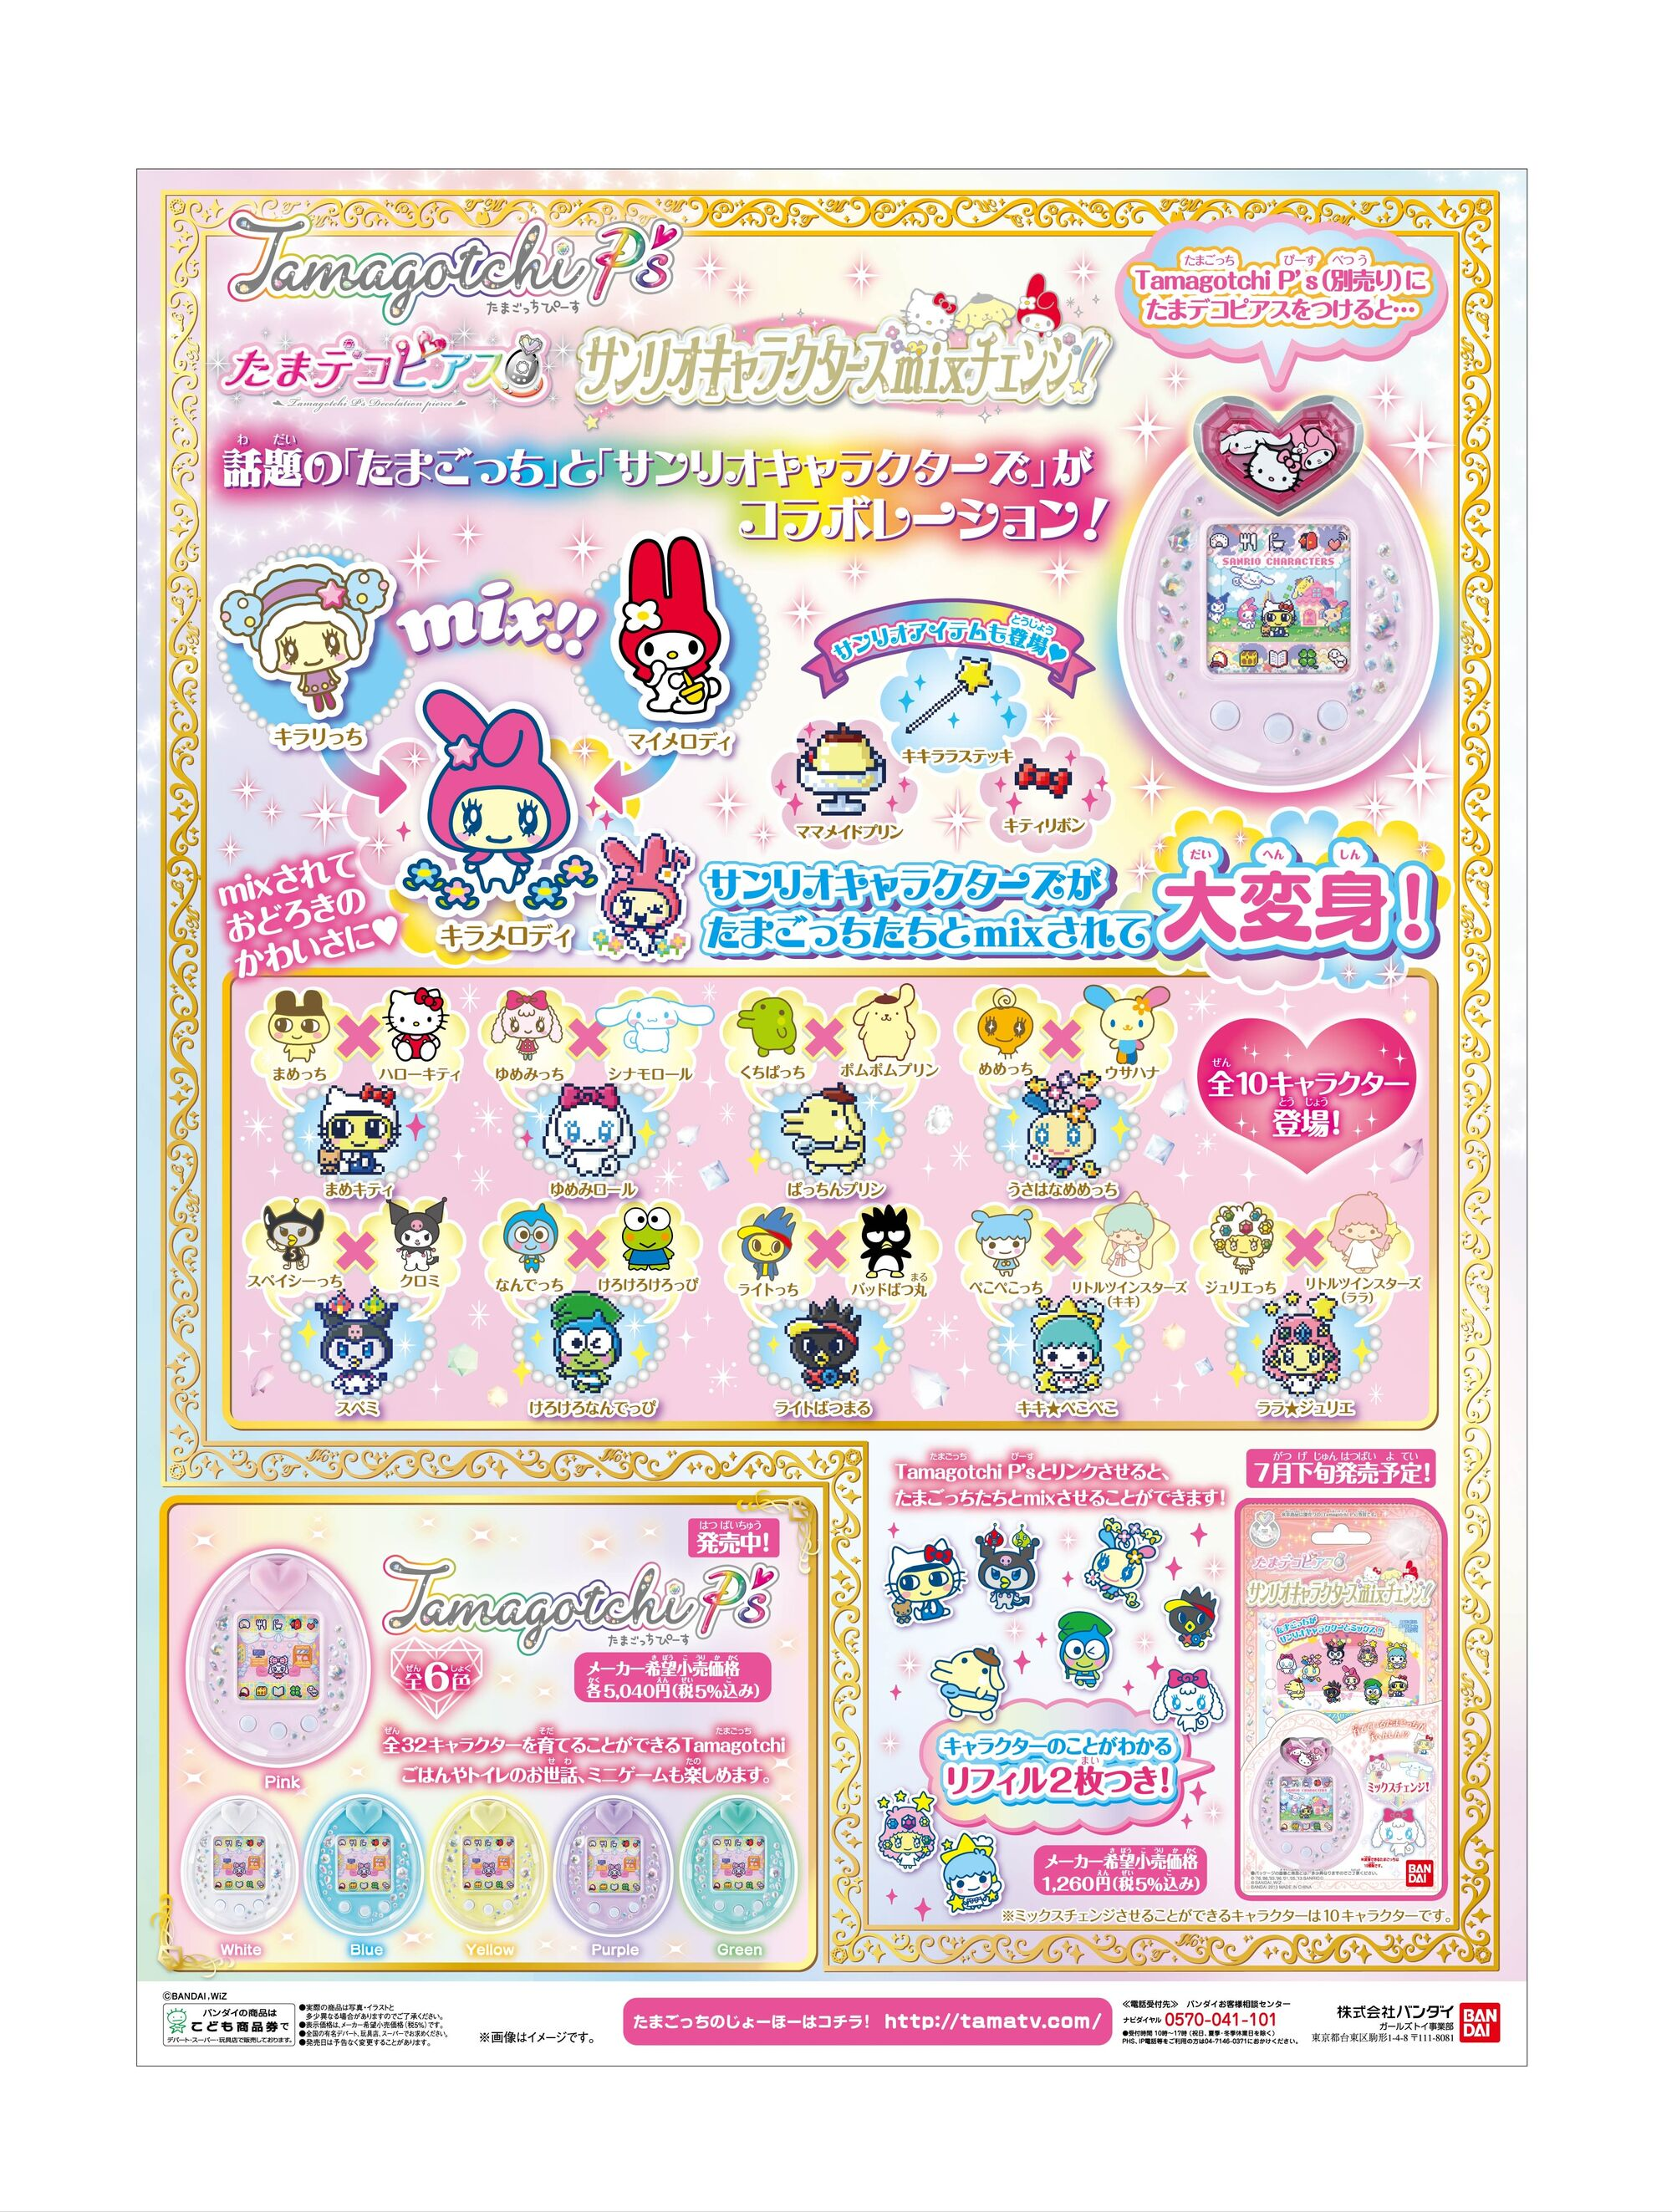 Image sanrio pierce posterg tamagotchi wiki fandom powered image sanrio pierce posterg tamagotchi wiki fandom powered by wikia geenschuldenfo Image collections